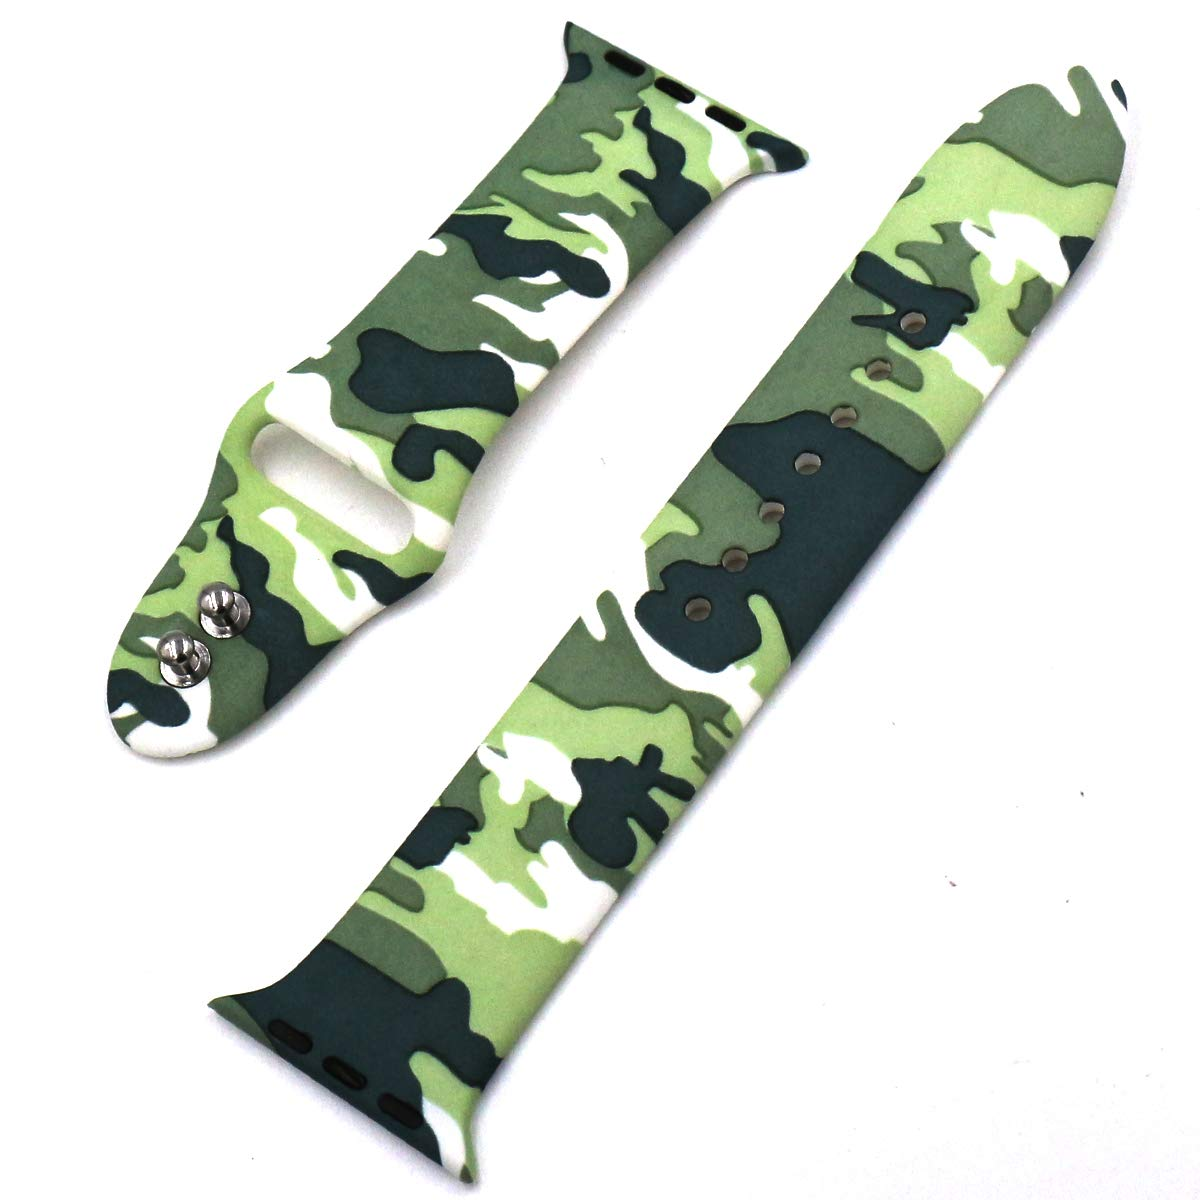 Eletespt 40mm Straps ompatible with Apple Watch Series 4 3 2 1 Bands, Sport Durable Accessories Replacement Band Strap for iWatch Men Women 38mm Wristband (Camo 38MM)     by Eletespt (Image #4)